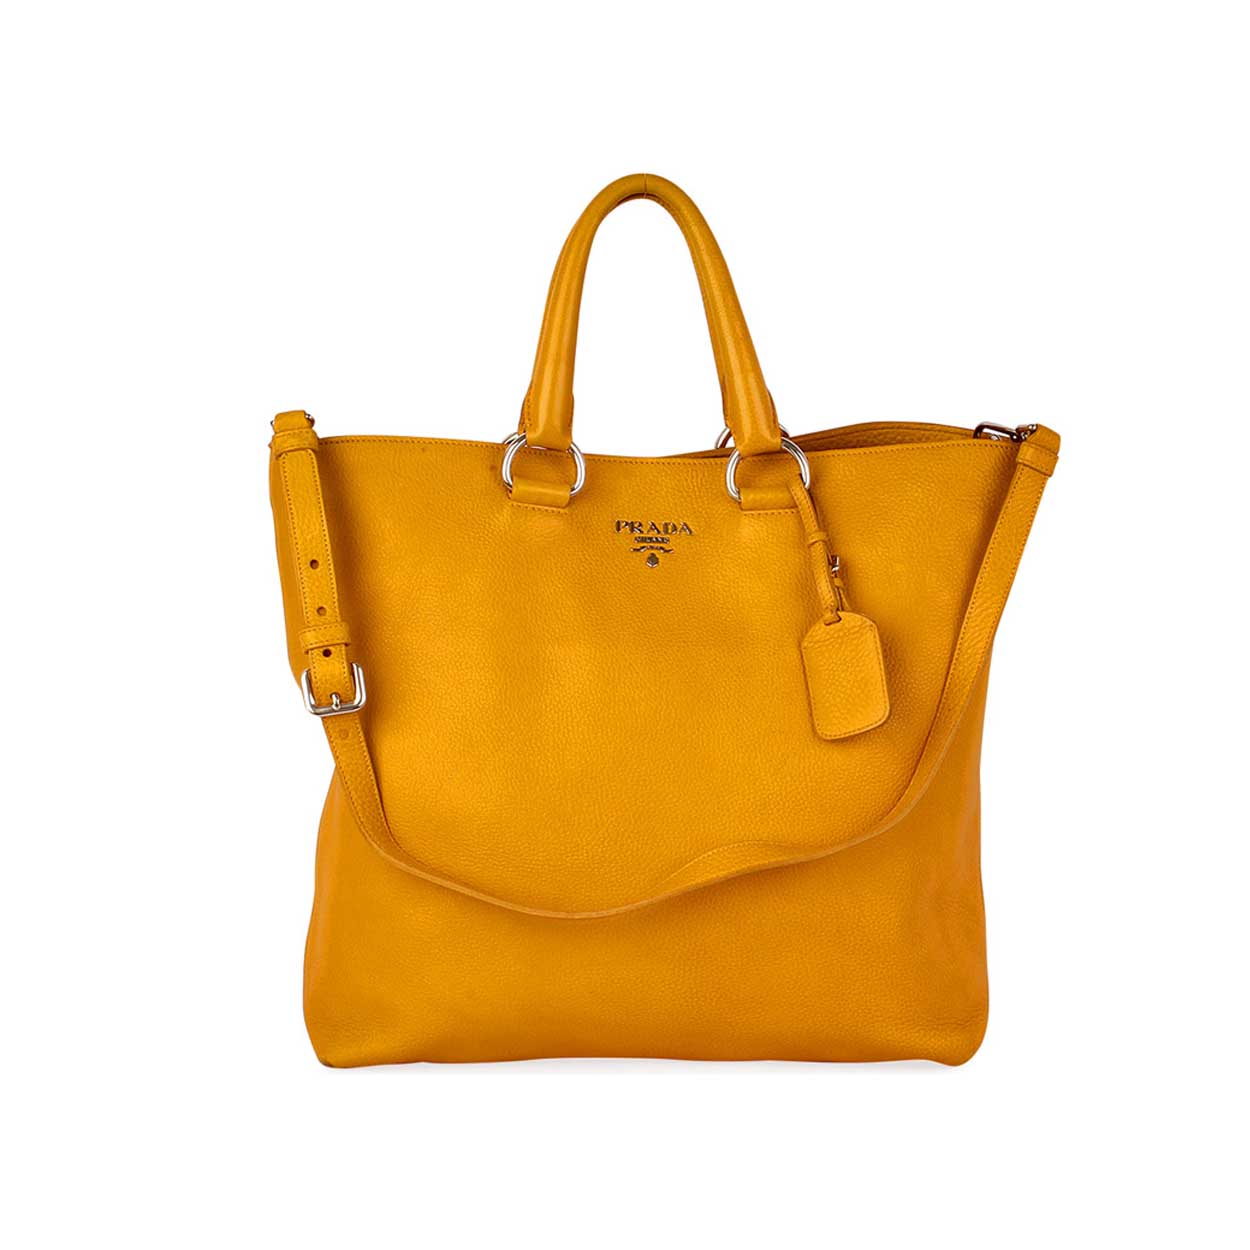 fe1f854ff085 Prada Shopper Tote Bag | Stanford Center for Opportunity Policy in ...